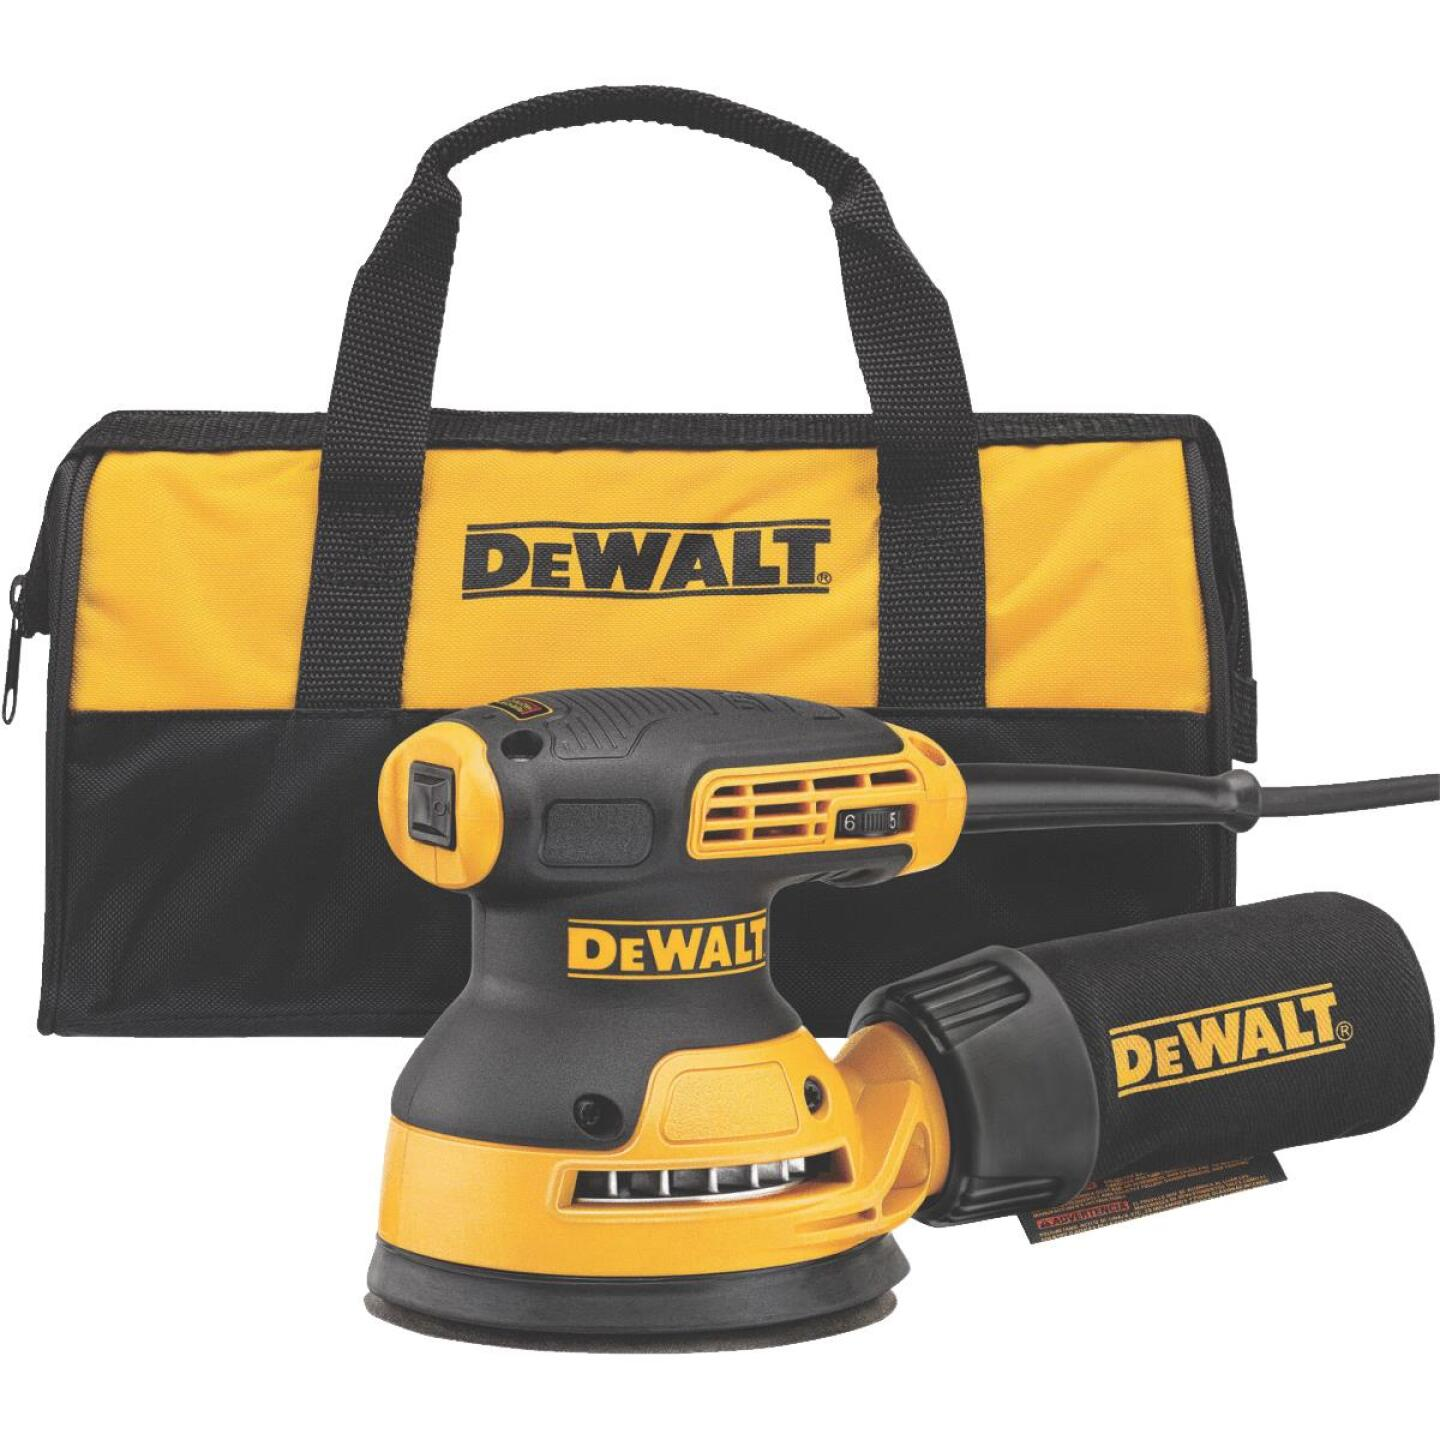 DeWalt 5 In. 3.0A Finish Sander Image 1